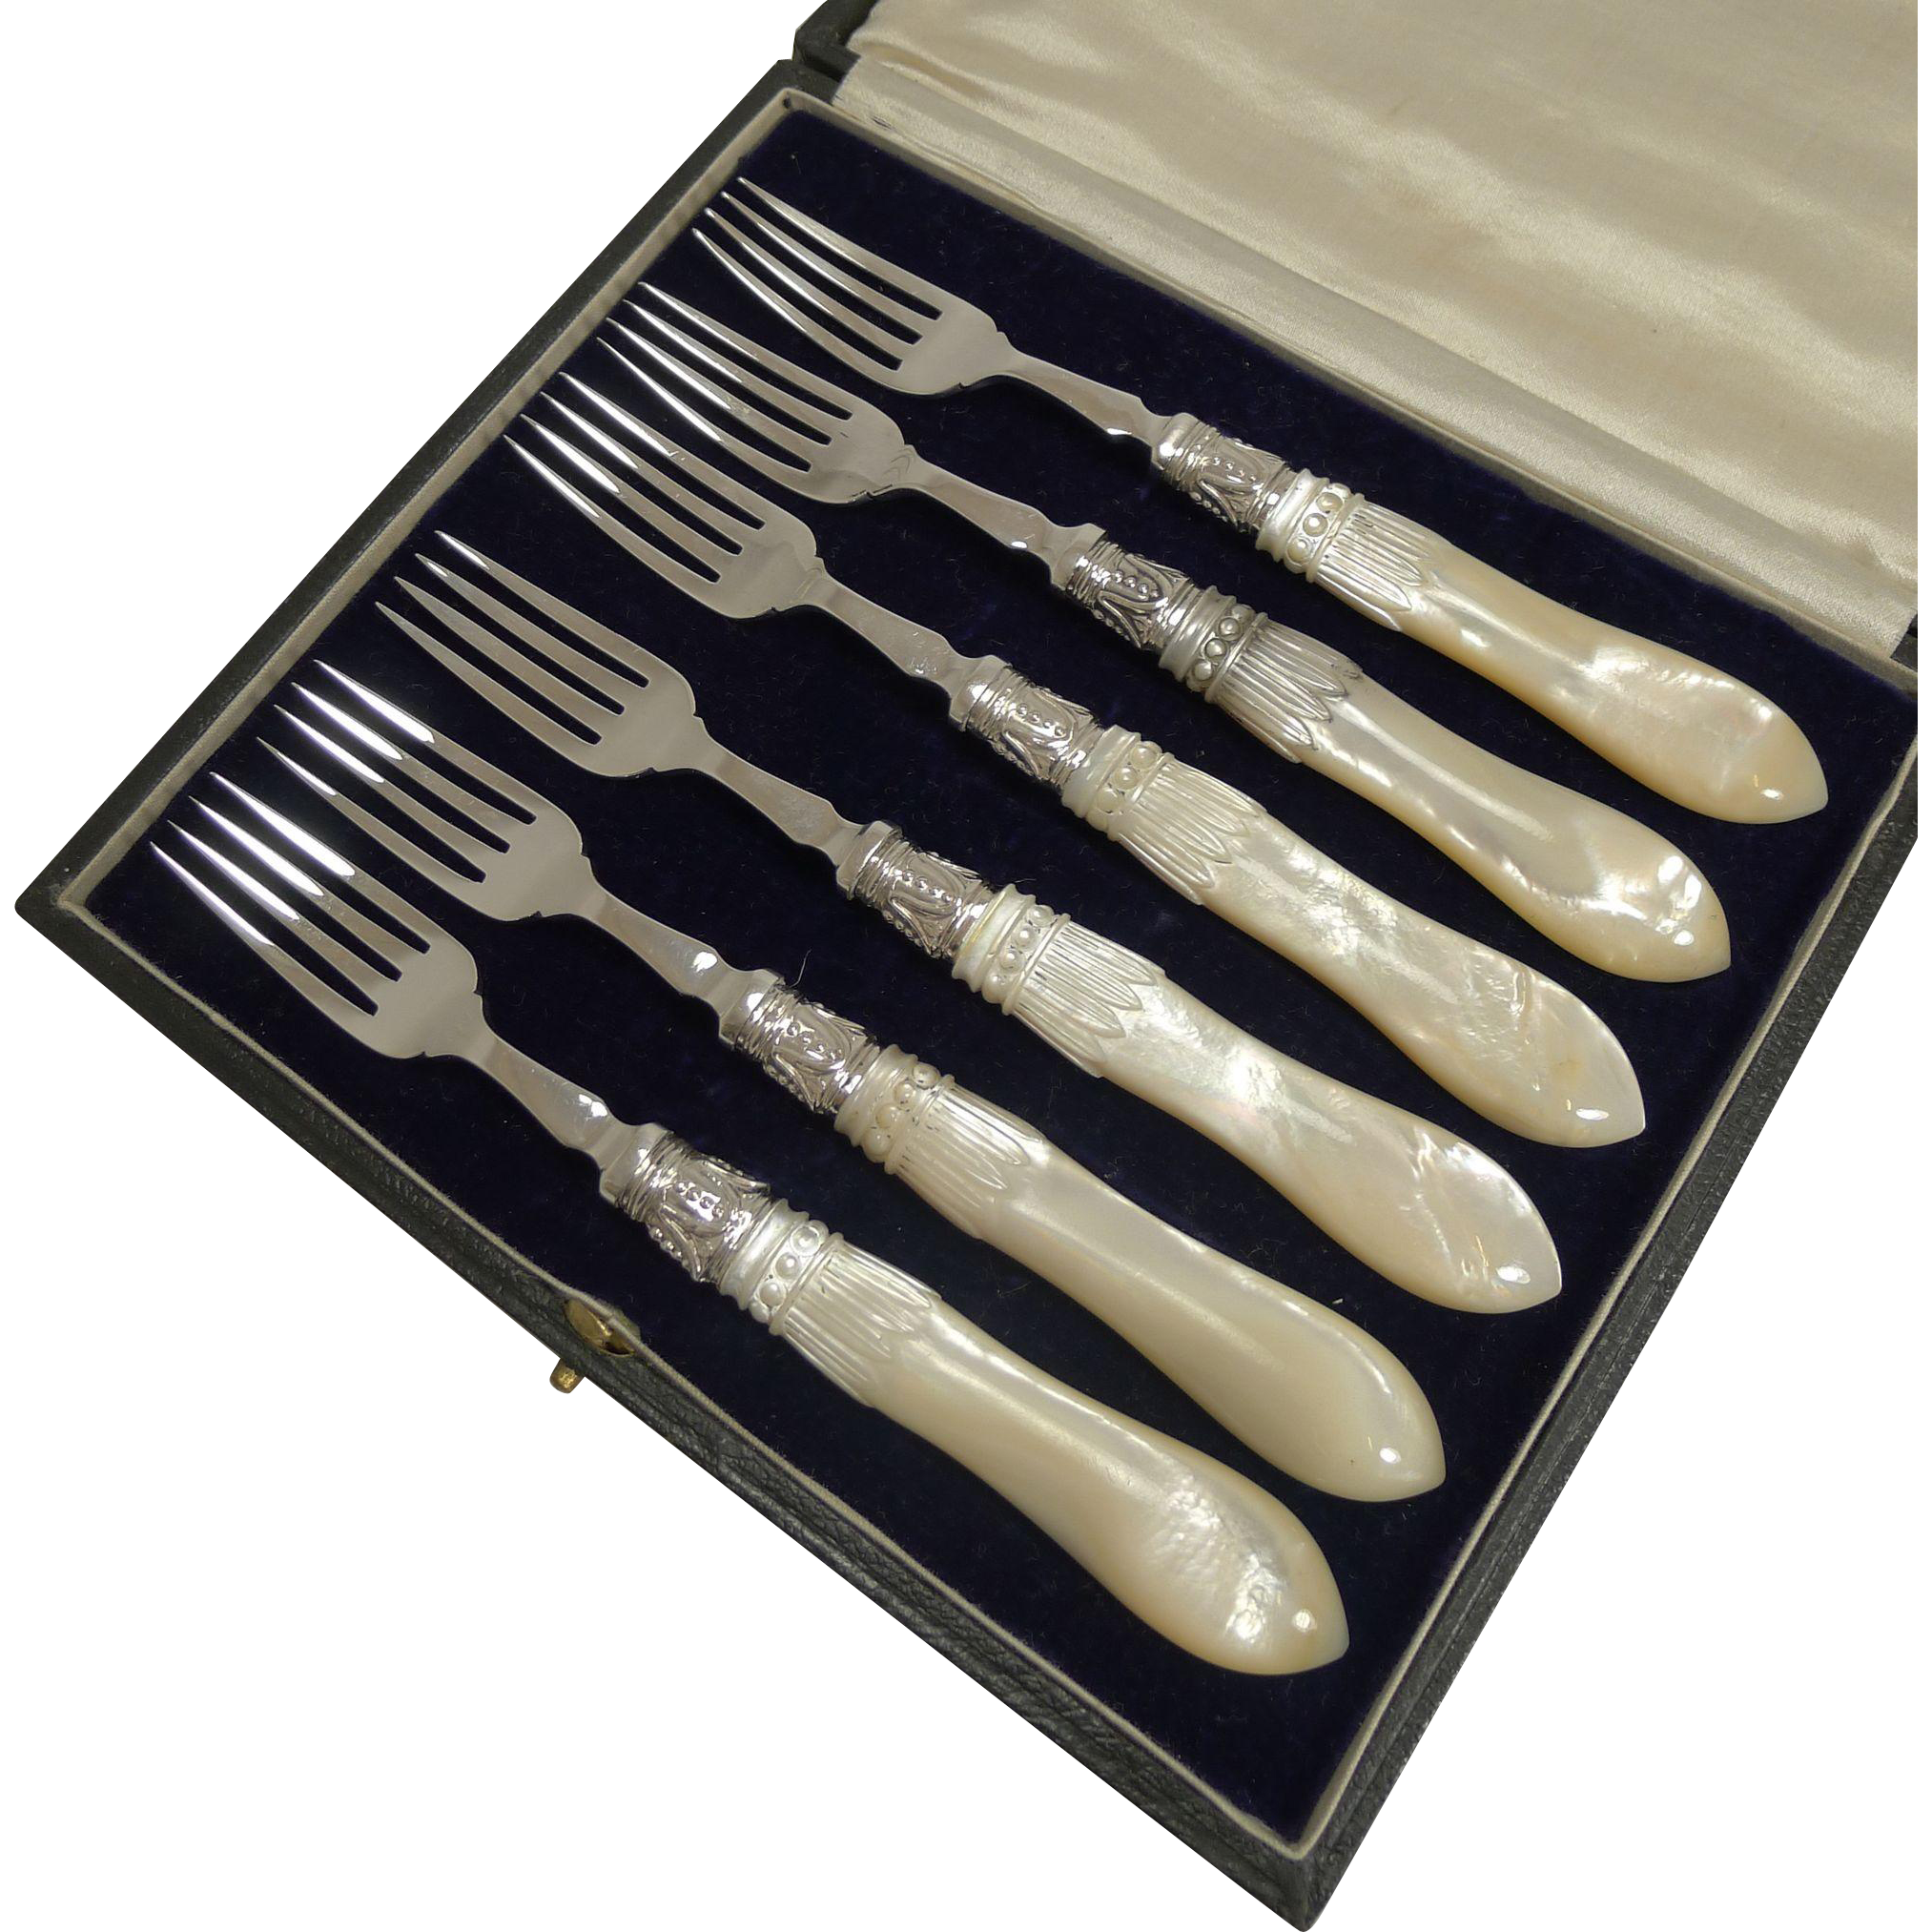 Antique English Sterling Silver & Mother of Pearl Cake or Desert Forks - 1913 / 1917